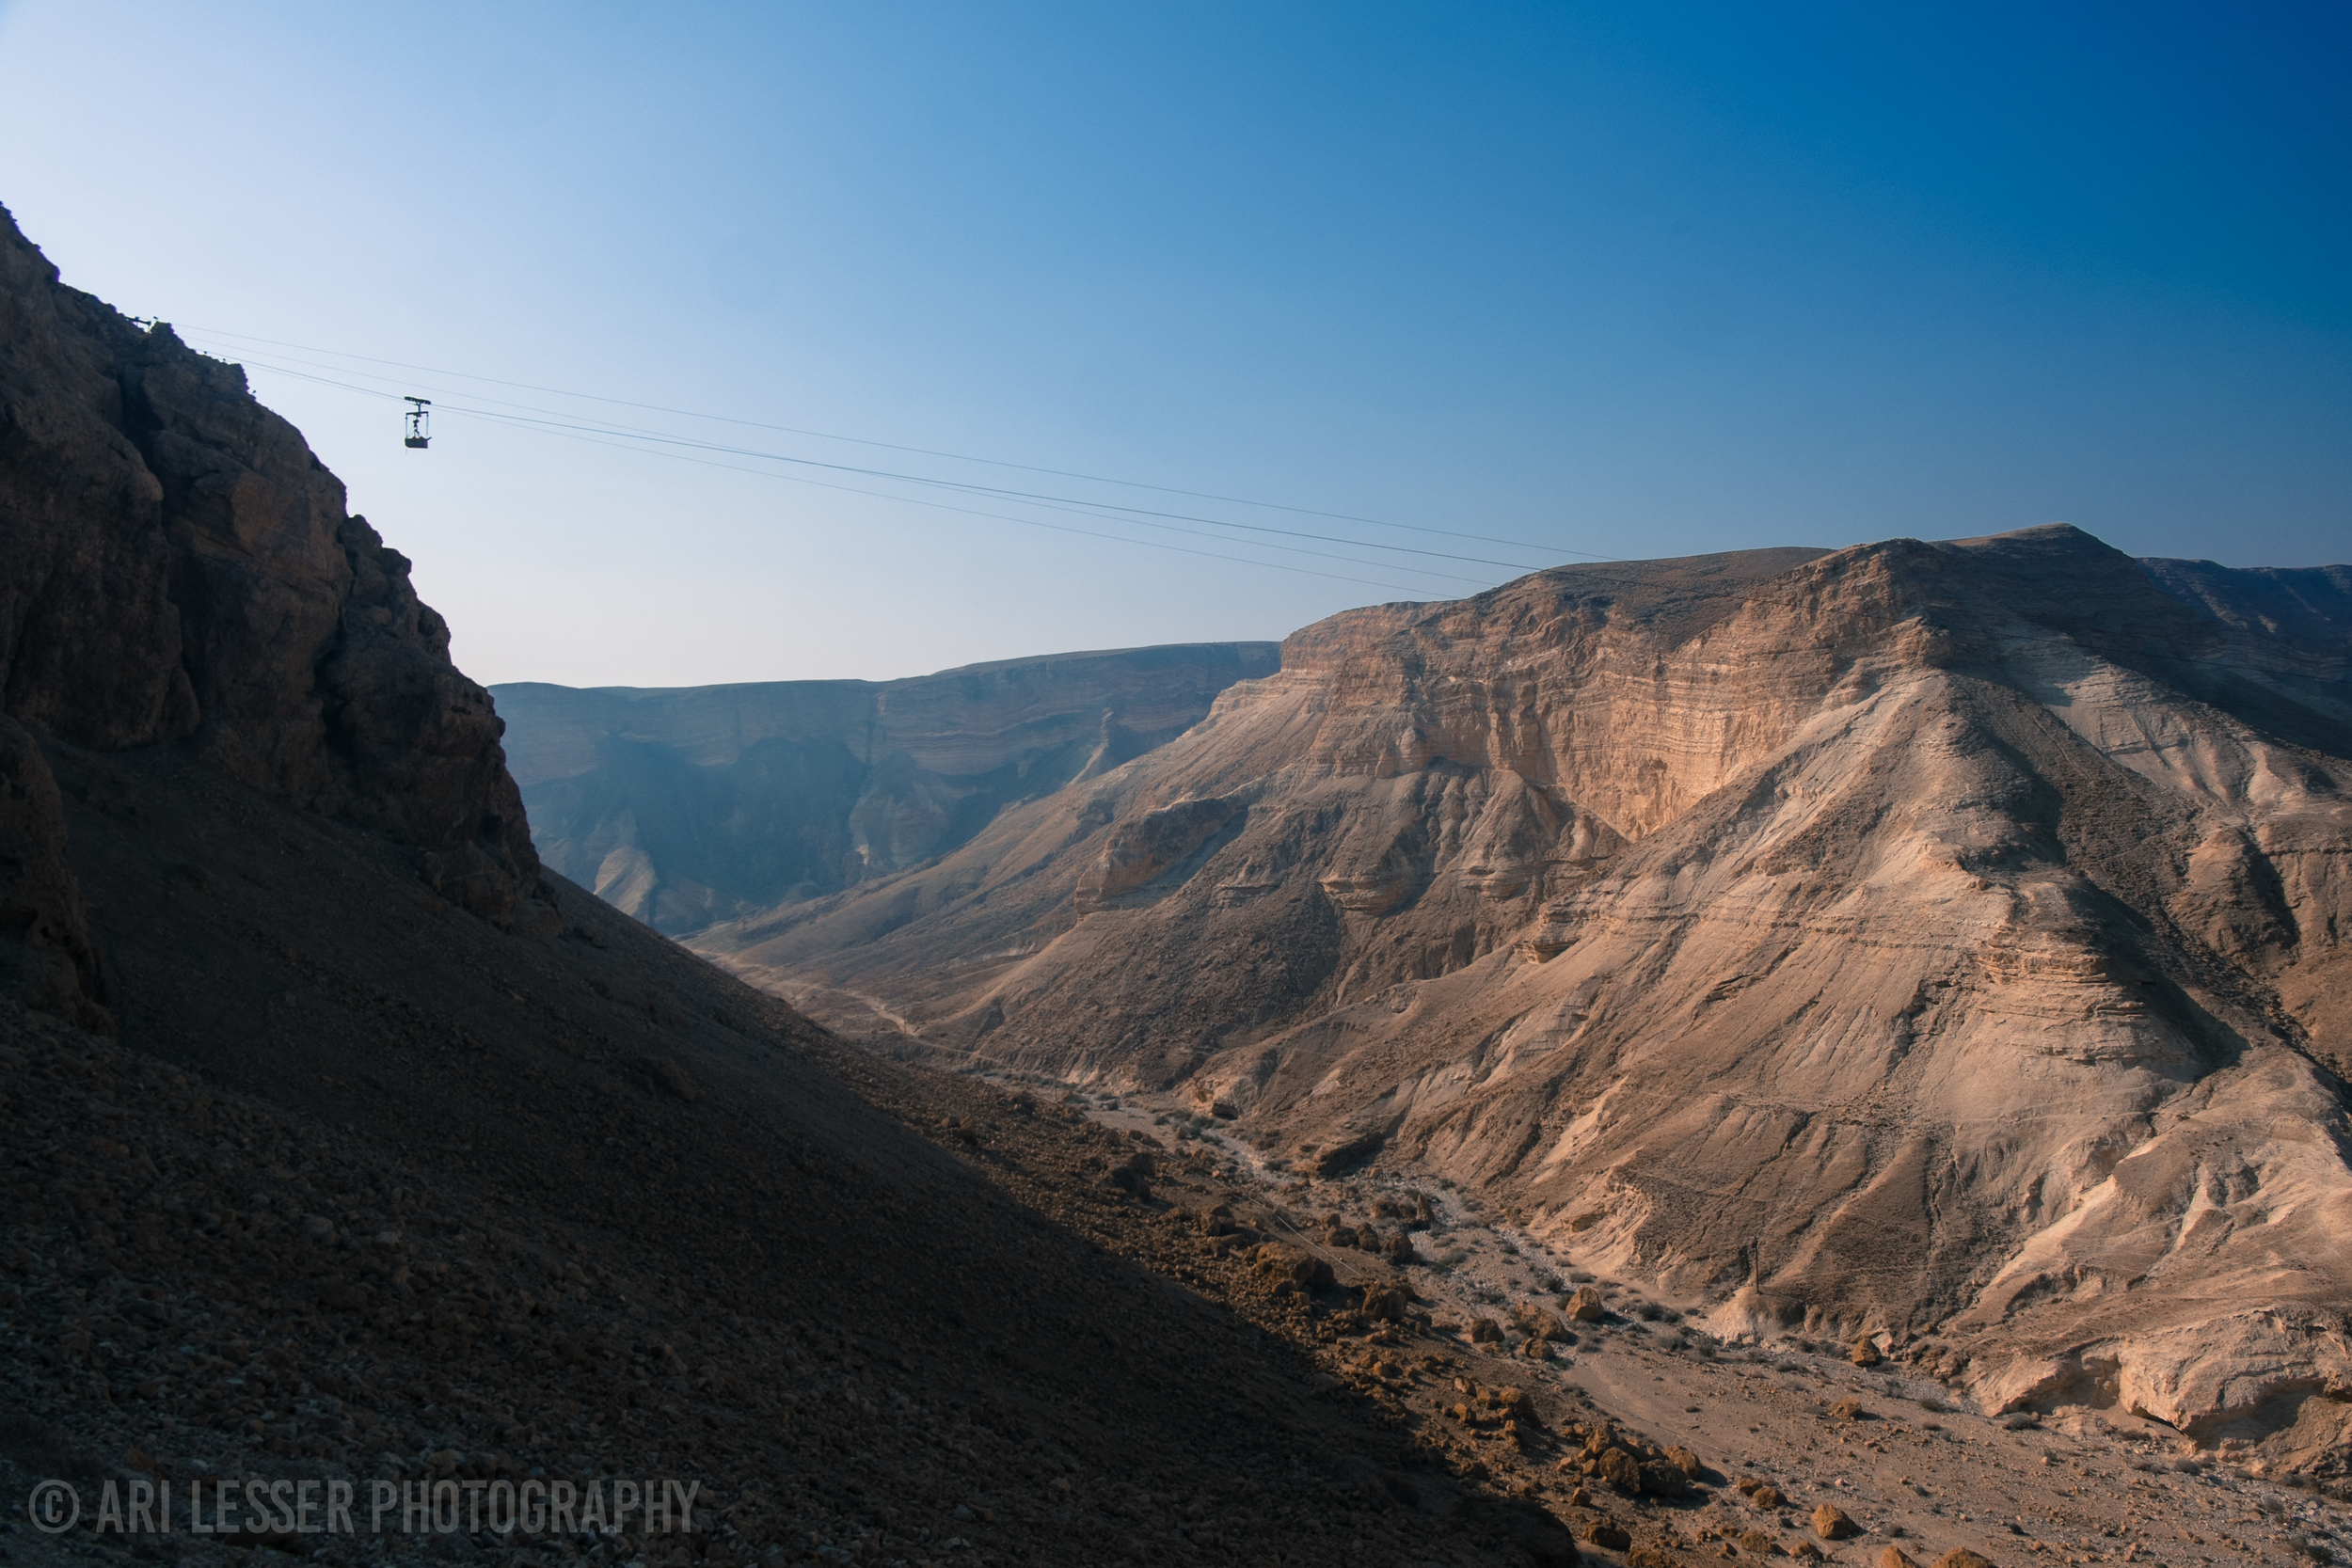 We are hiking up Masada - the site of an ancient mass suicide to avoid being captured by the Romans.